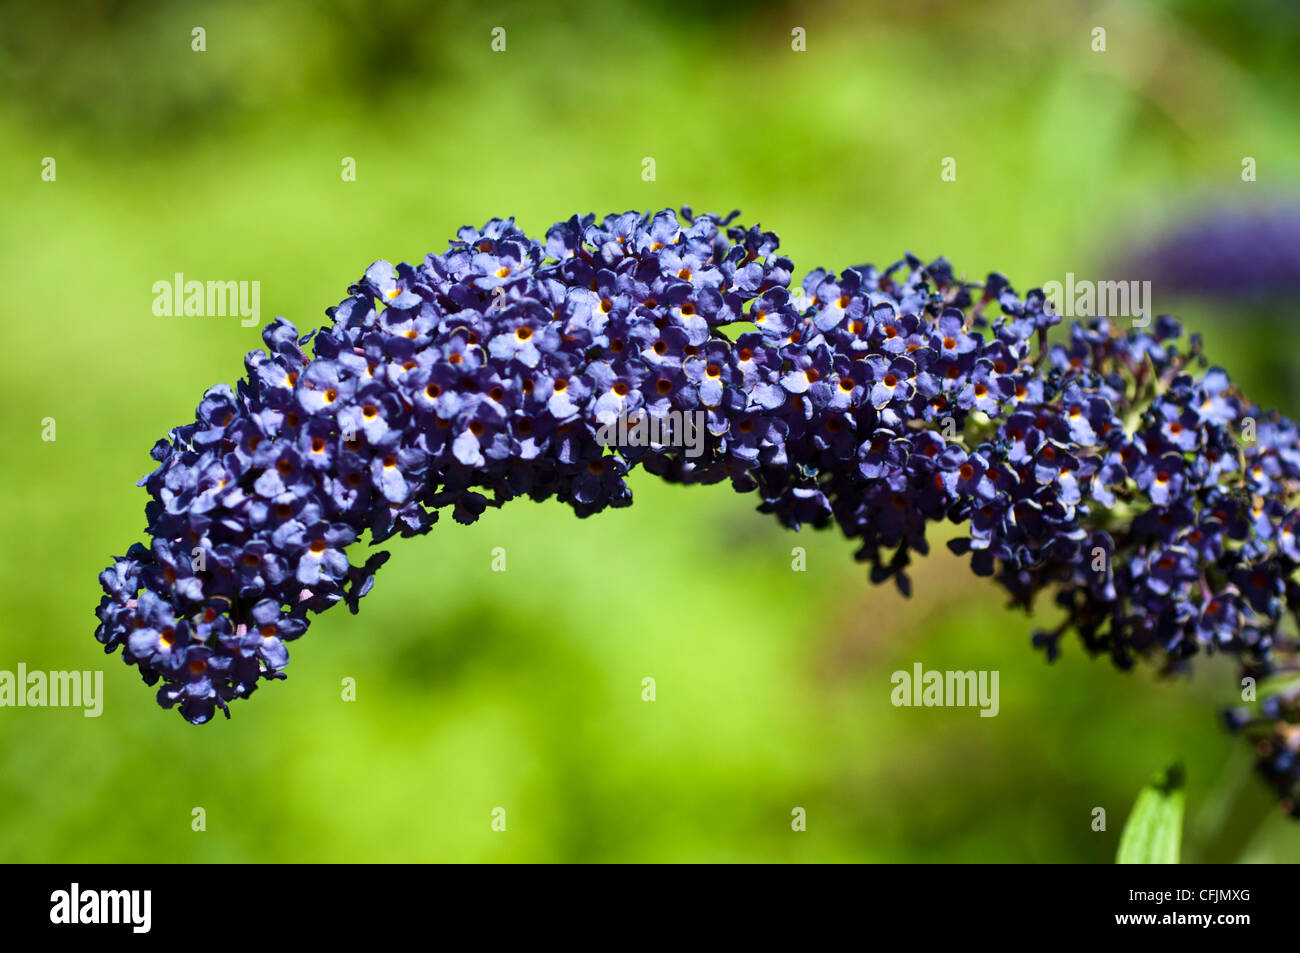 Purple violet flowers of Butterfly Bush, Buddleia Davidii with green dissolved background, blossom, bloom - Stock Image